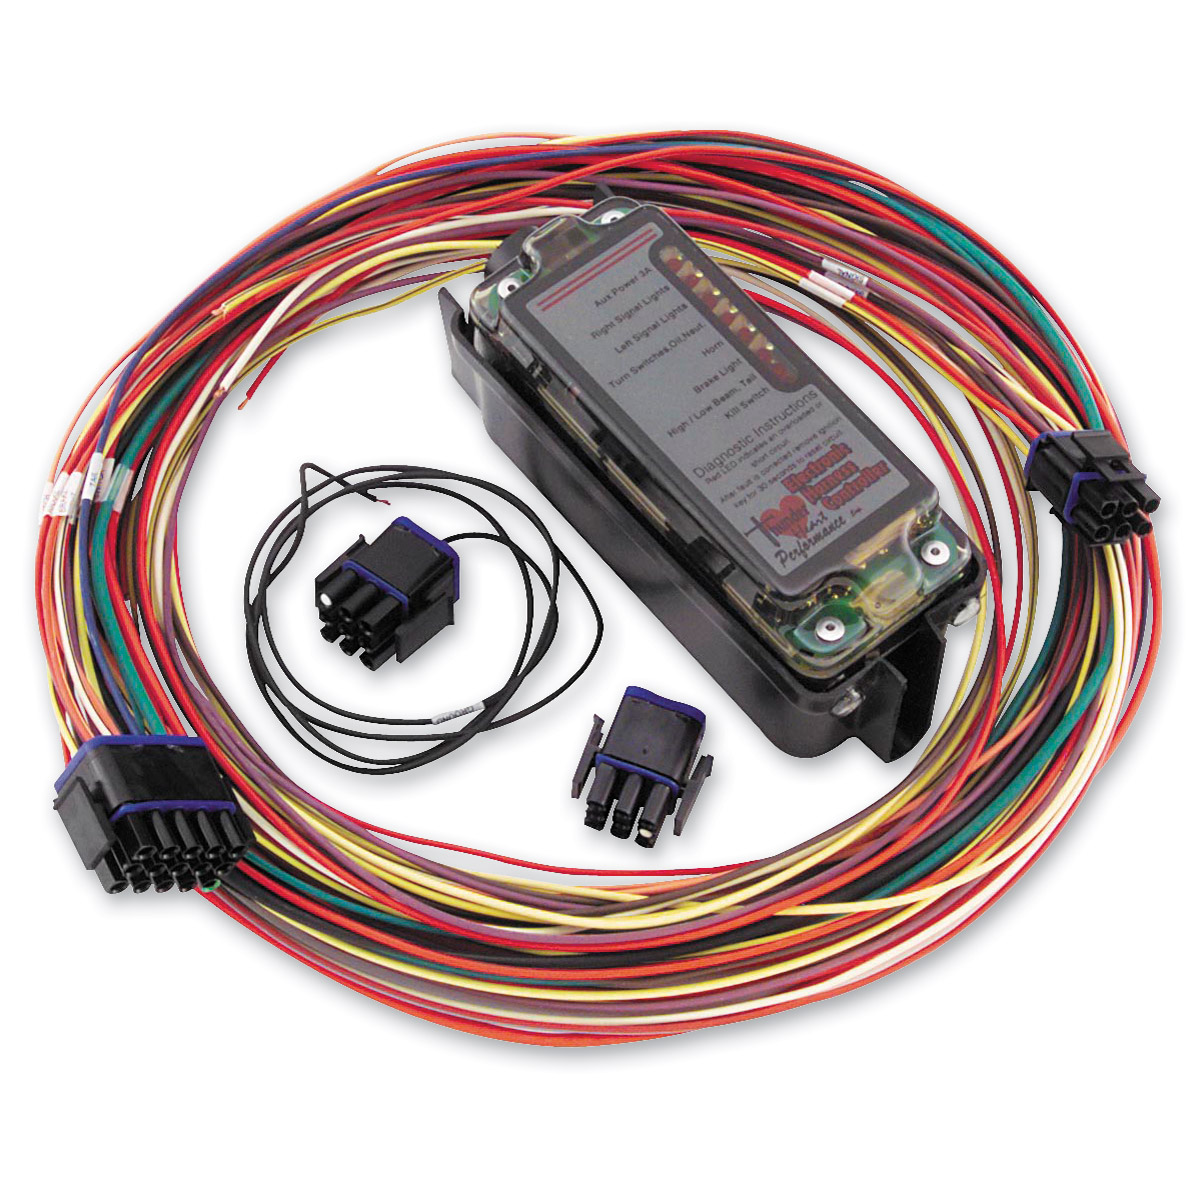 Thunder Performance Complete Electronic Harness Controller ... on harley chopper wiring harness, harley sportster wiring harness, harley wiring diagram for dummies, harley davidson speaker wiring, harley wiring harness kits, columbia wiring harness, harley davidson stator wiring, cobra wiring harness, harley davidson stereo wiring diagram, mitsubishi wiring harness, harley davidson wiring color code, mercury wiring harness, harley softail wiring harness, royal enfield wiring harness, harley davidson trailer wiring diagram, harley davidson wiring connectors, motorcycle wiring harness, harley wiring harness diagram, harley shovelhead wiring harness, piaggio wiring harness,